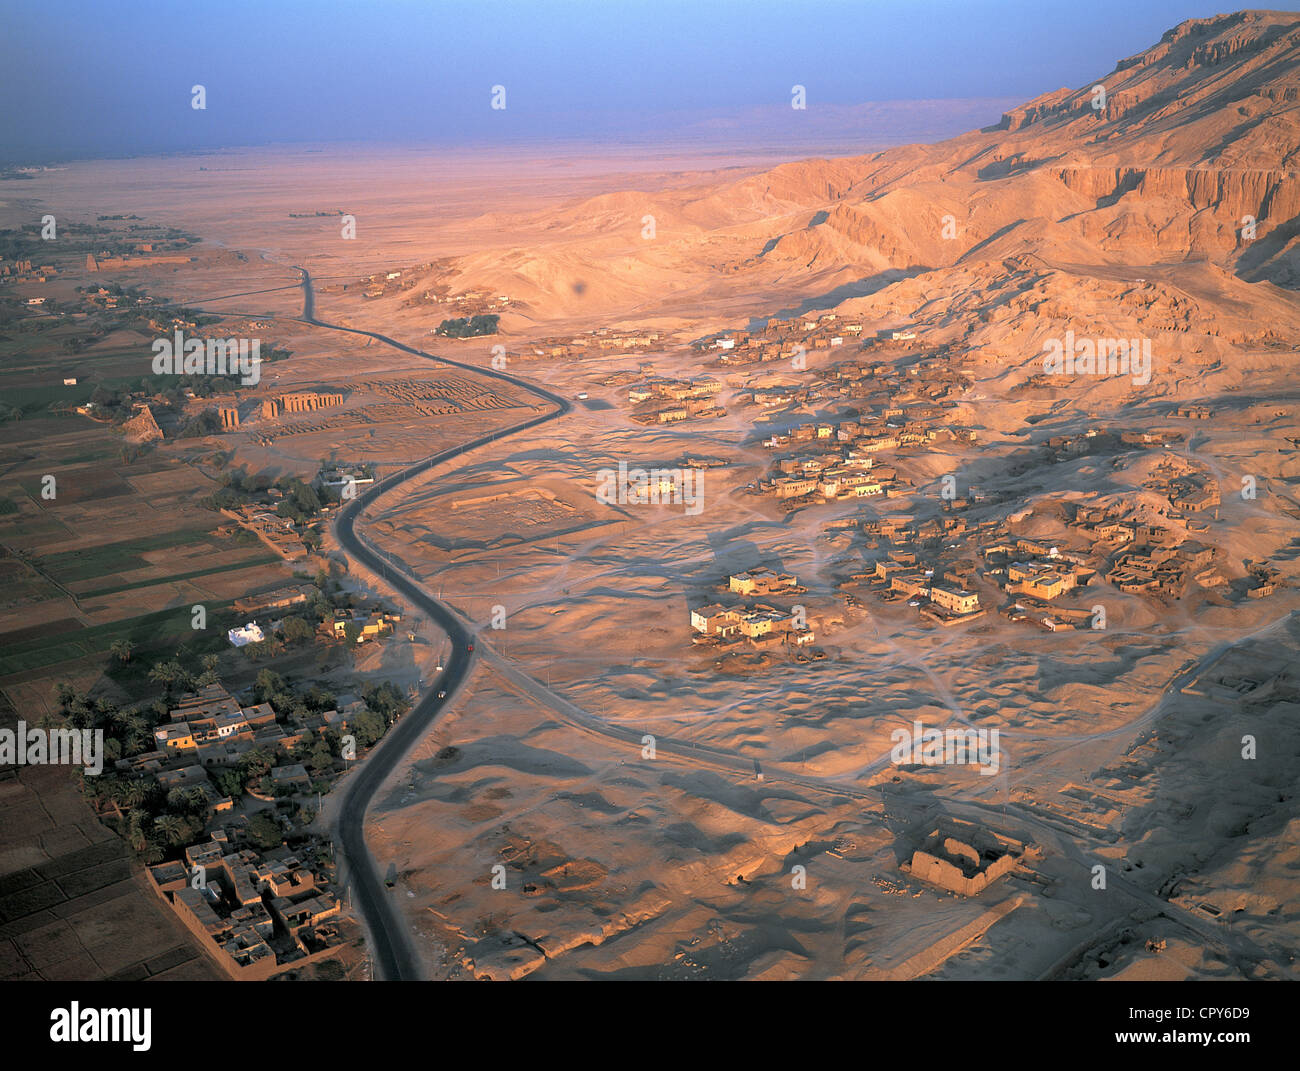 Egypt Upper Egypt Nile Valley Luxor West Bank Of River Nile Stock Photo